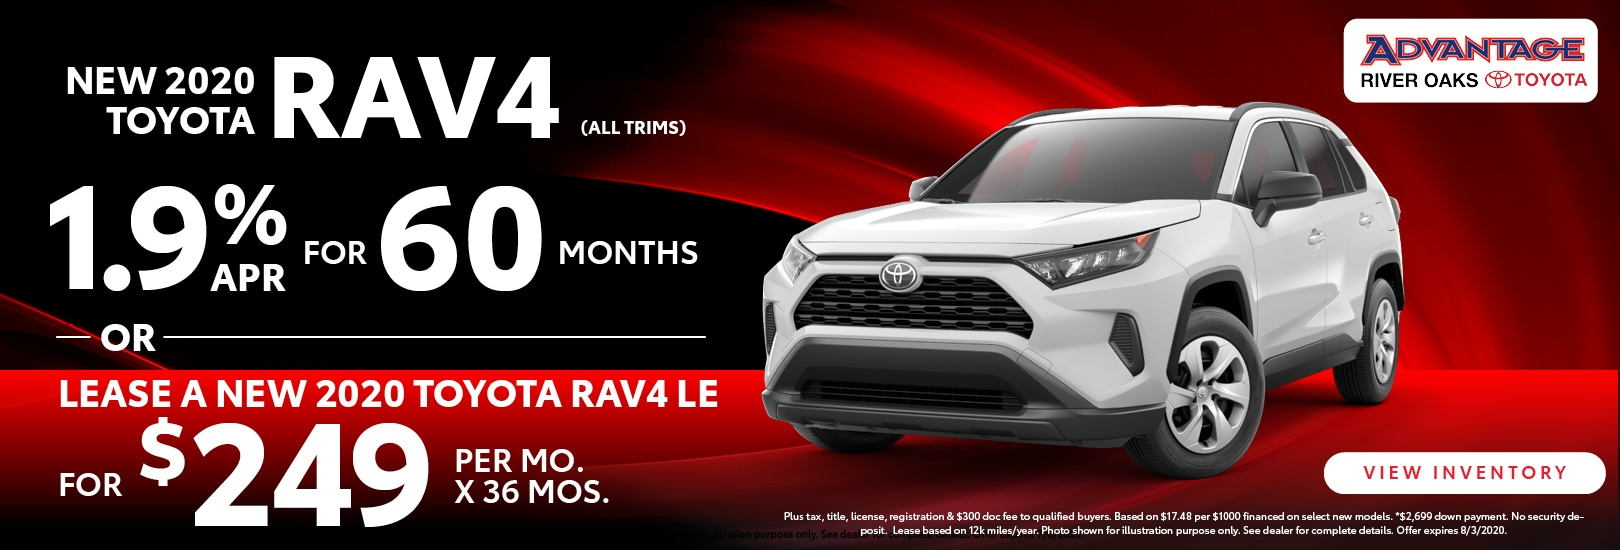 2020 Toyota RAV4 Lease Offer | Advantage Toyota of River Oaks